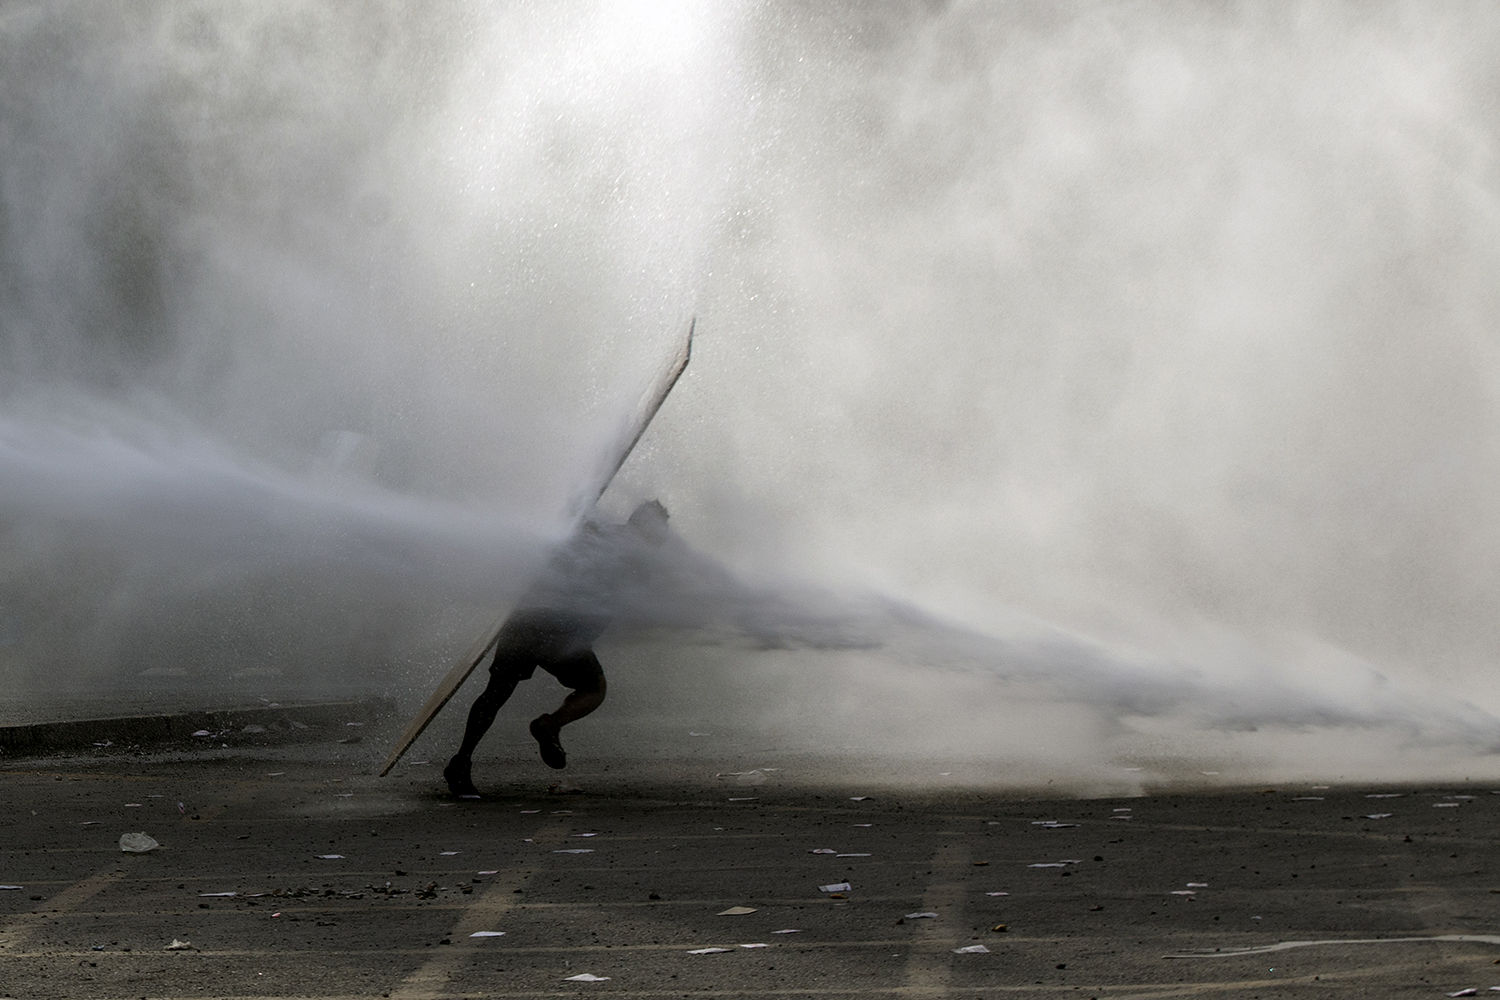 CHILE | A demonstrator is hit by riot police water cannon spray during a protest against the government in Santiago on Nov. 18. CLAUDIO REYES/AFP via Getty Images